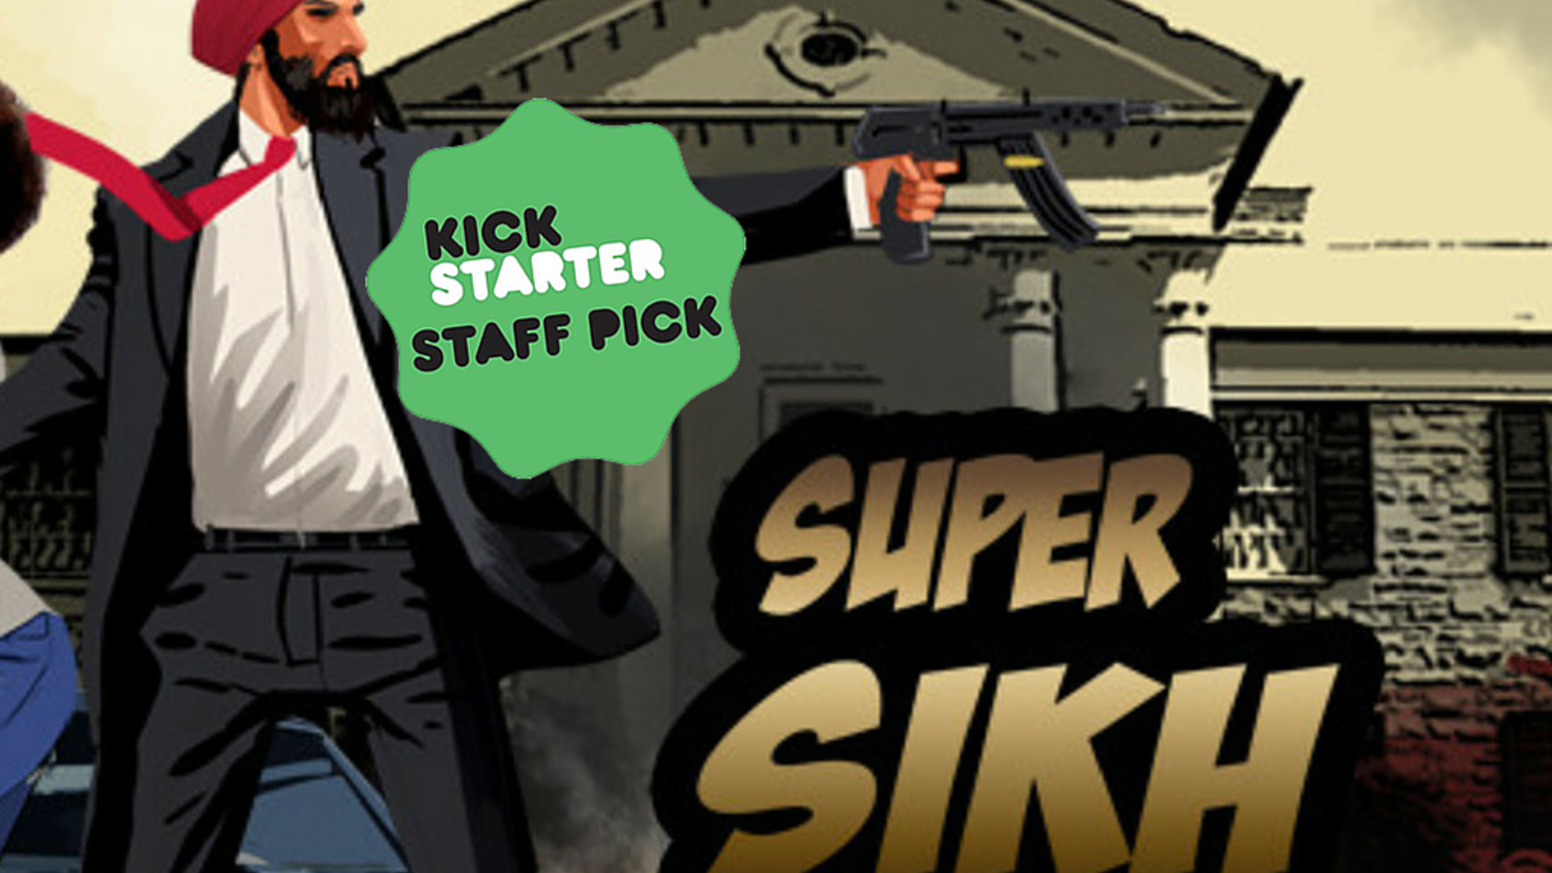 Kids comic book featuring Super Sikh aka Secret Agent Deep Singh. A story where justice wins, bullies lose. Fuel for the imagination.